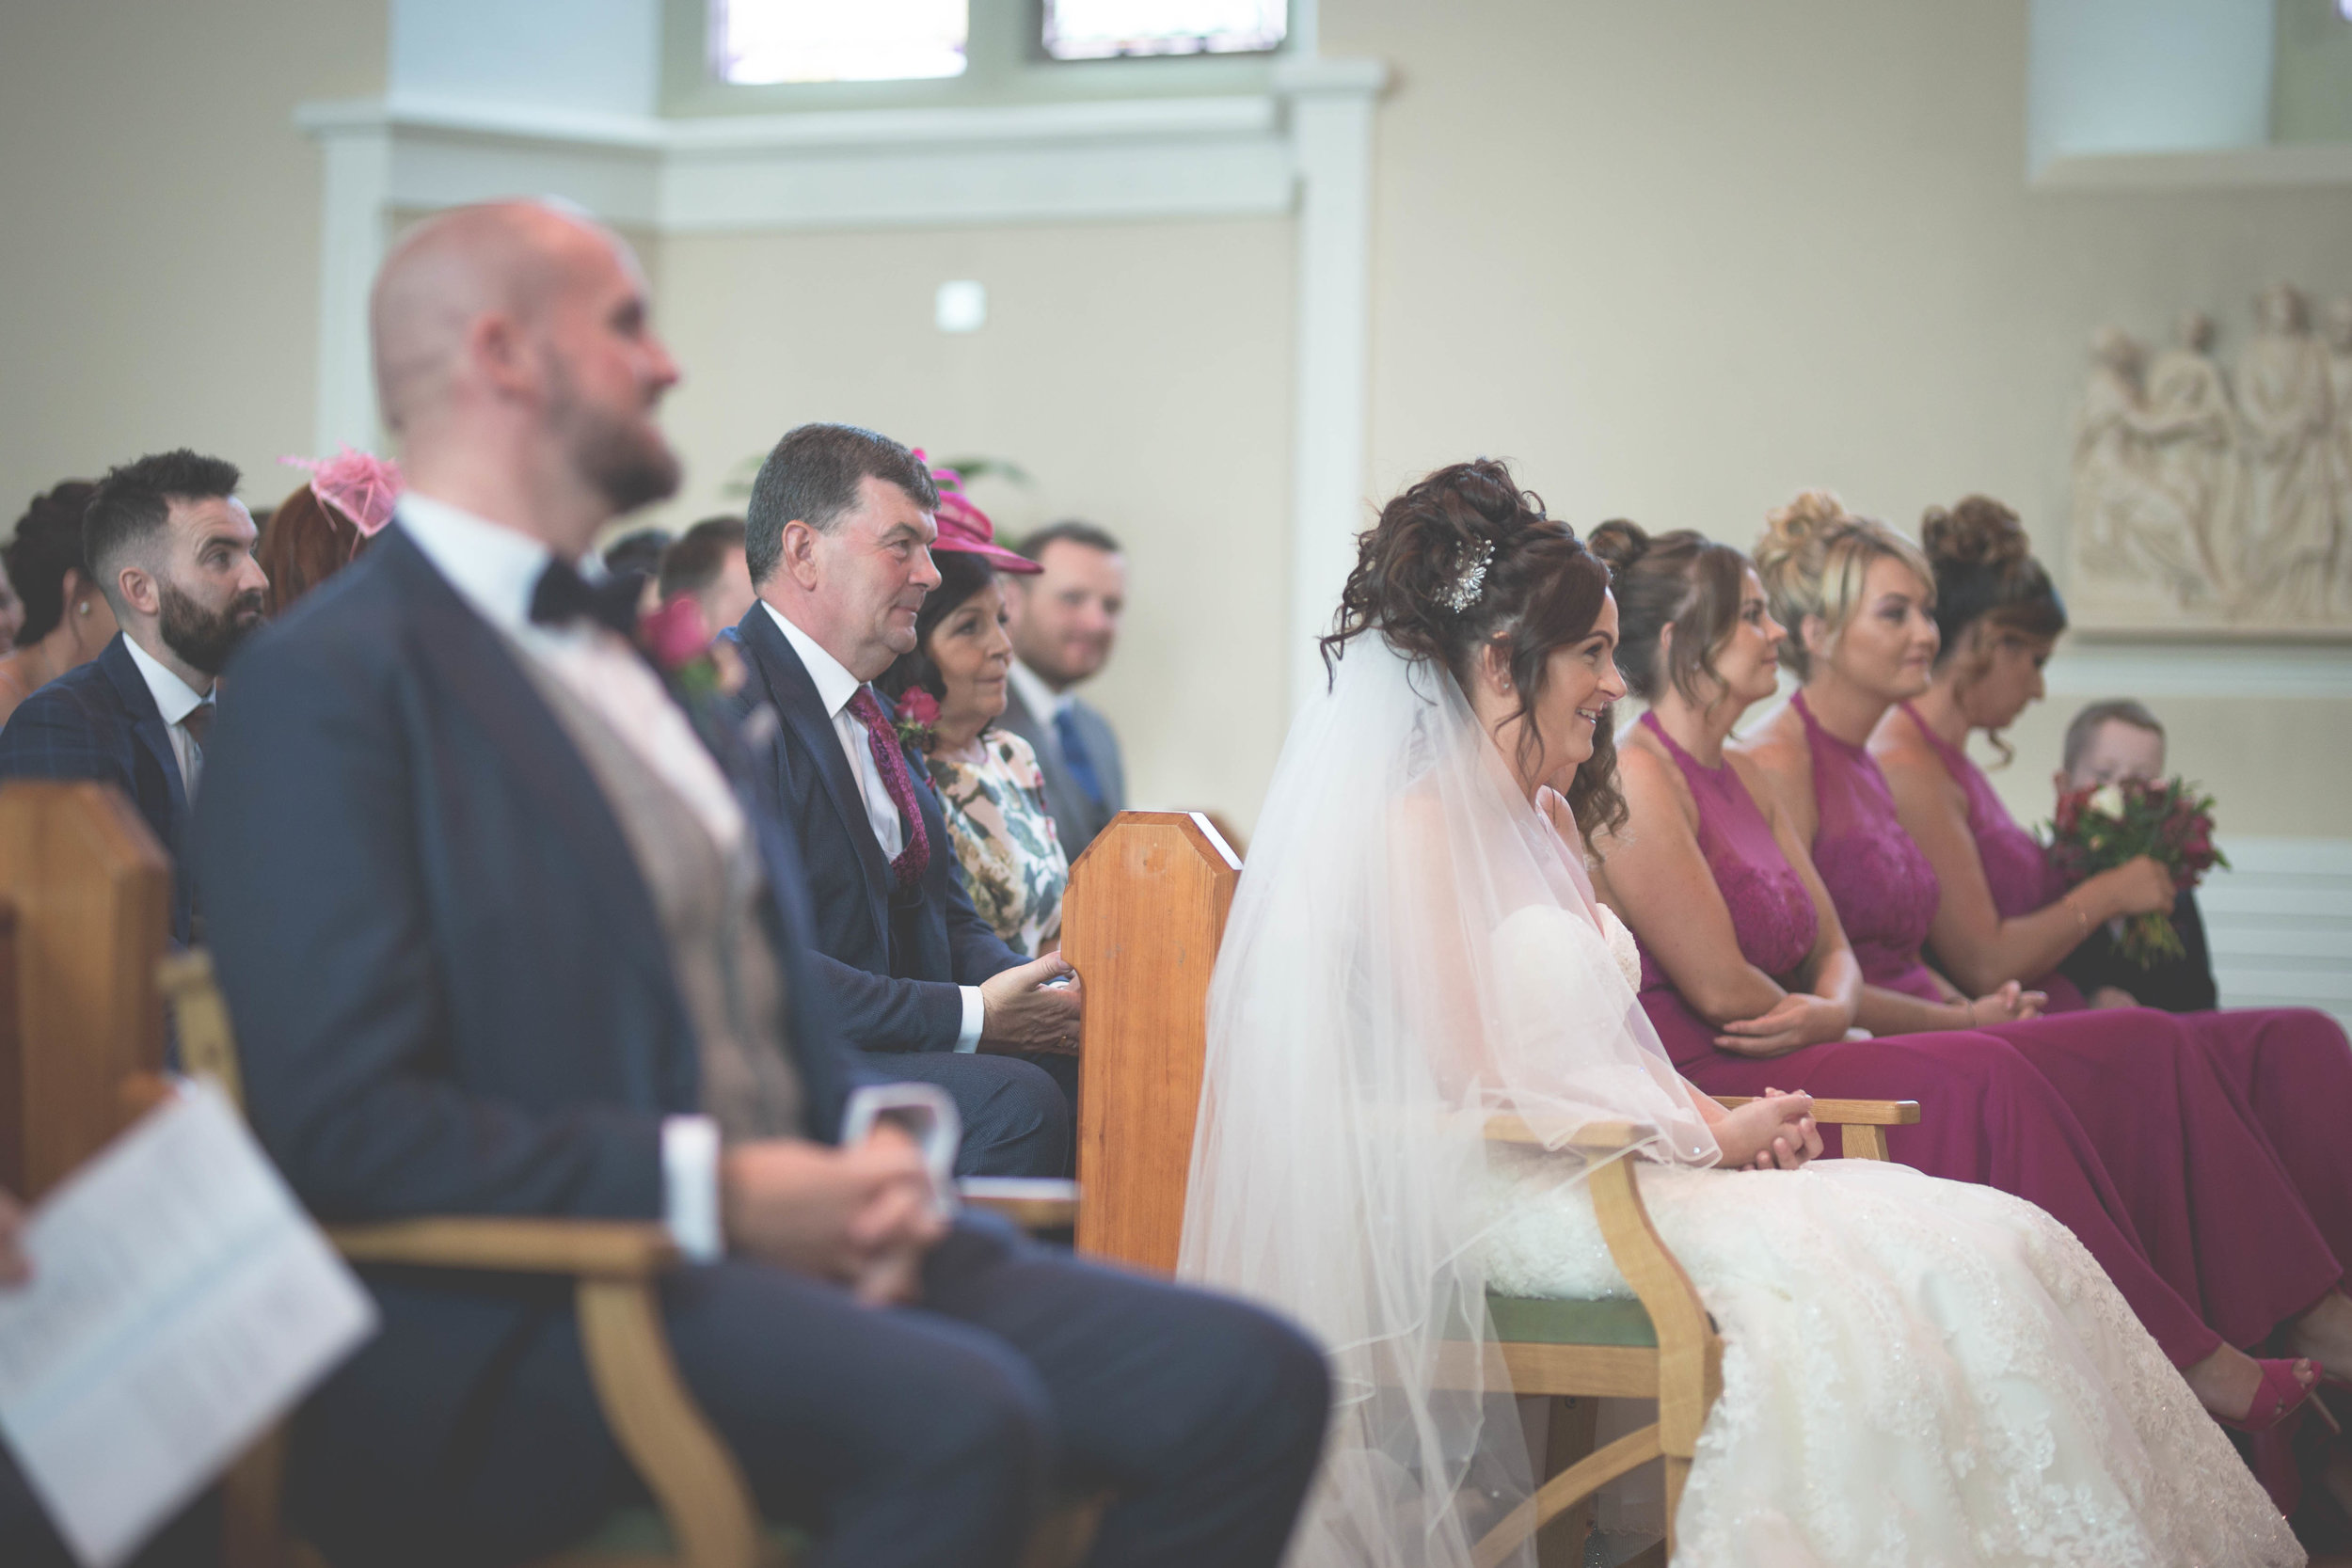 Aisling & Andy - Ceremony-60.jpg